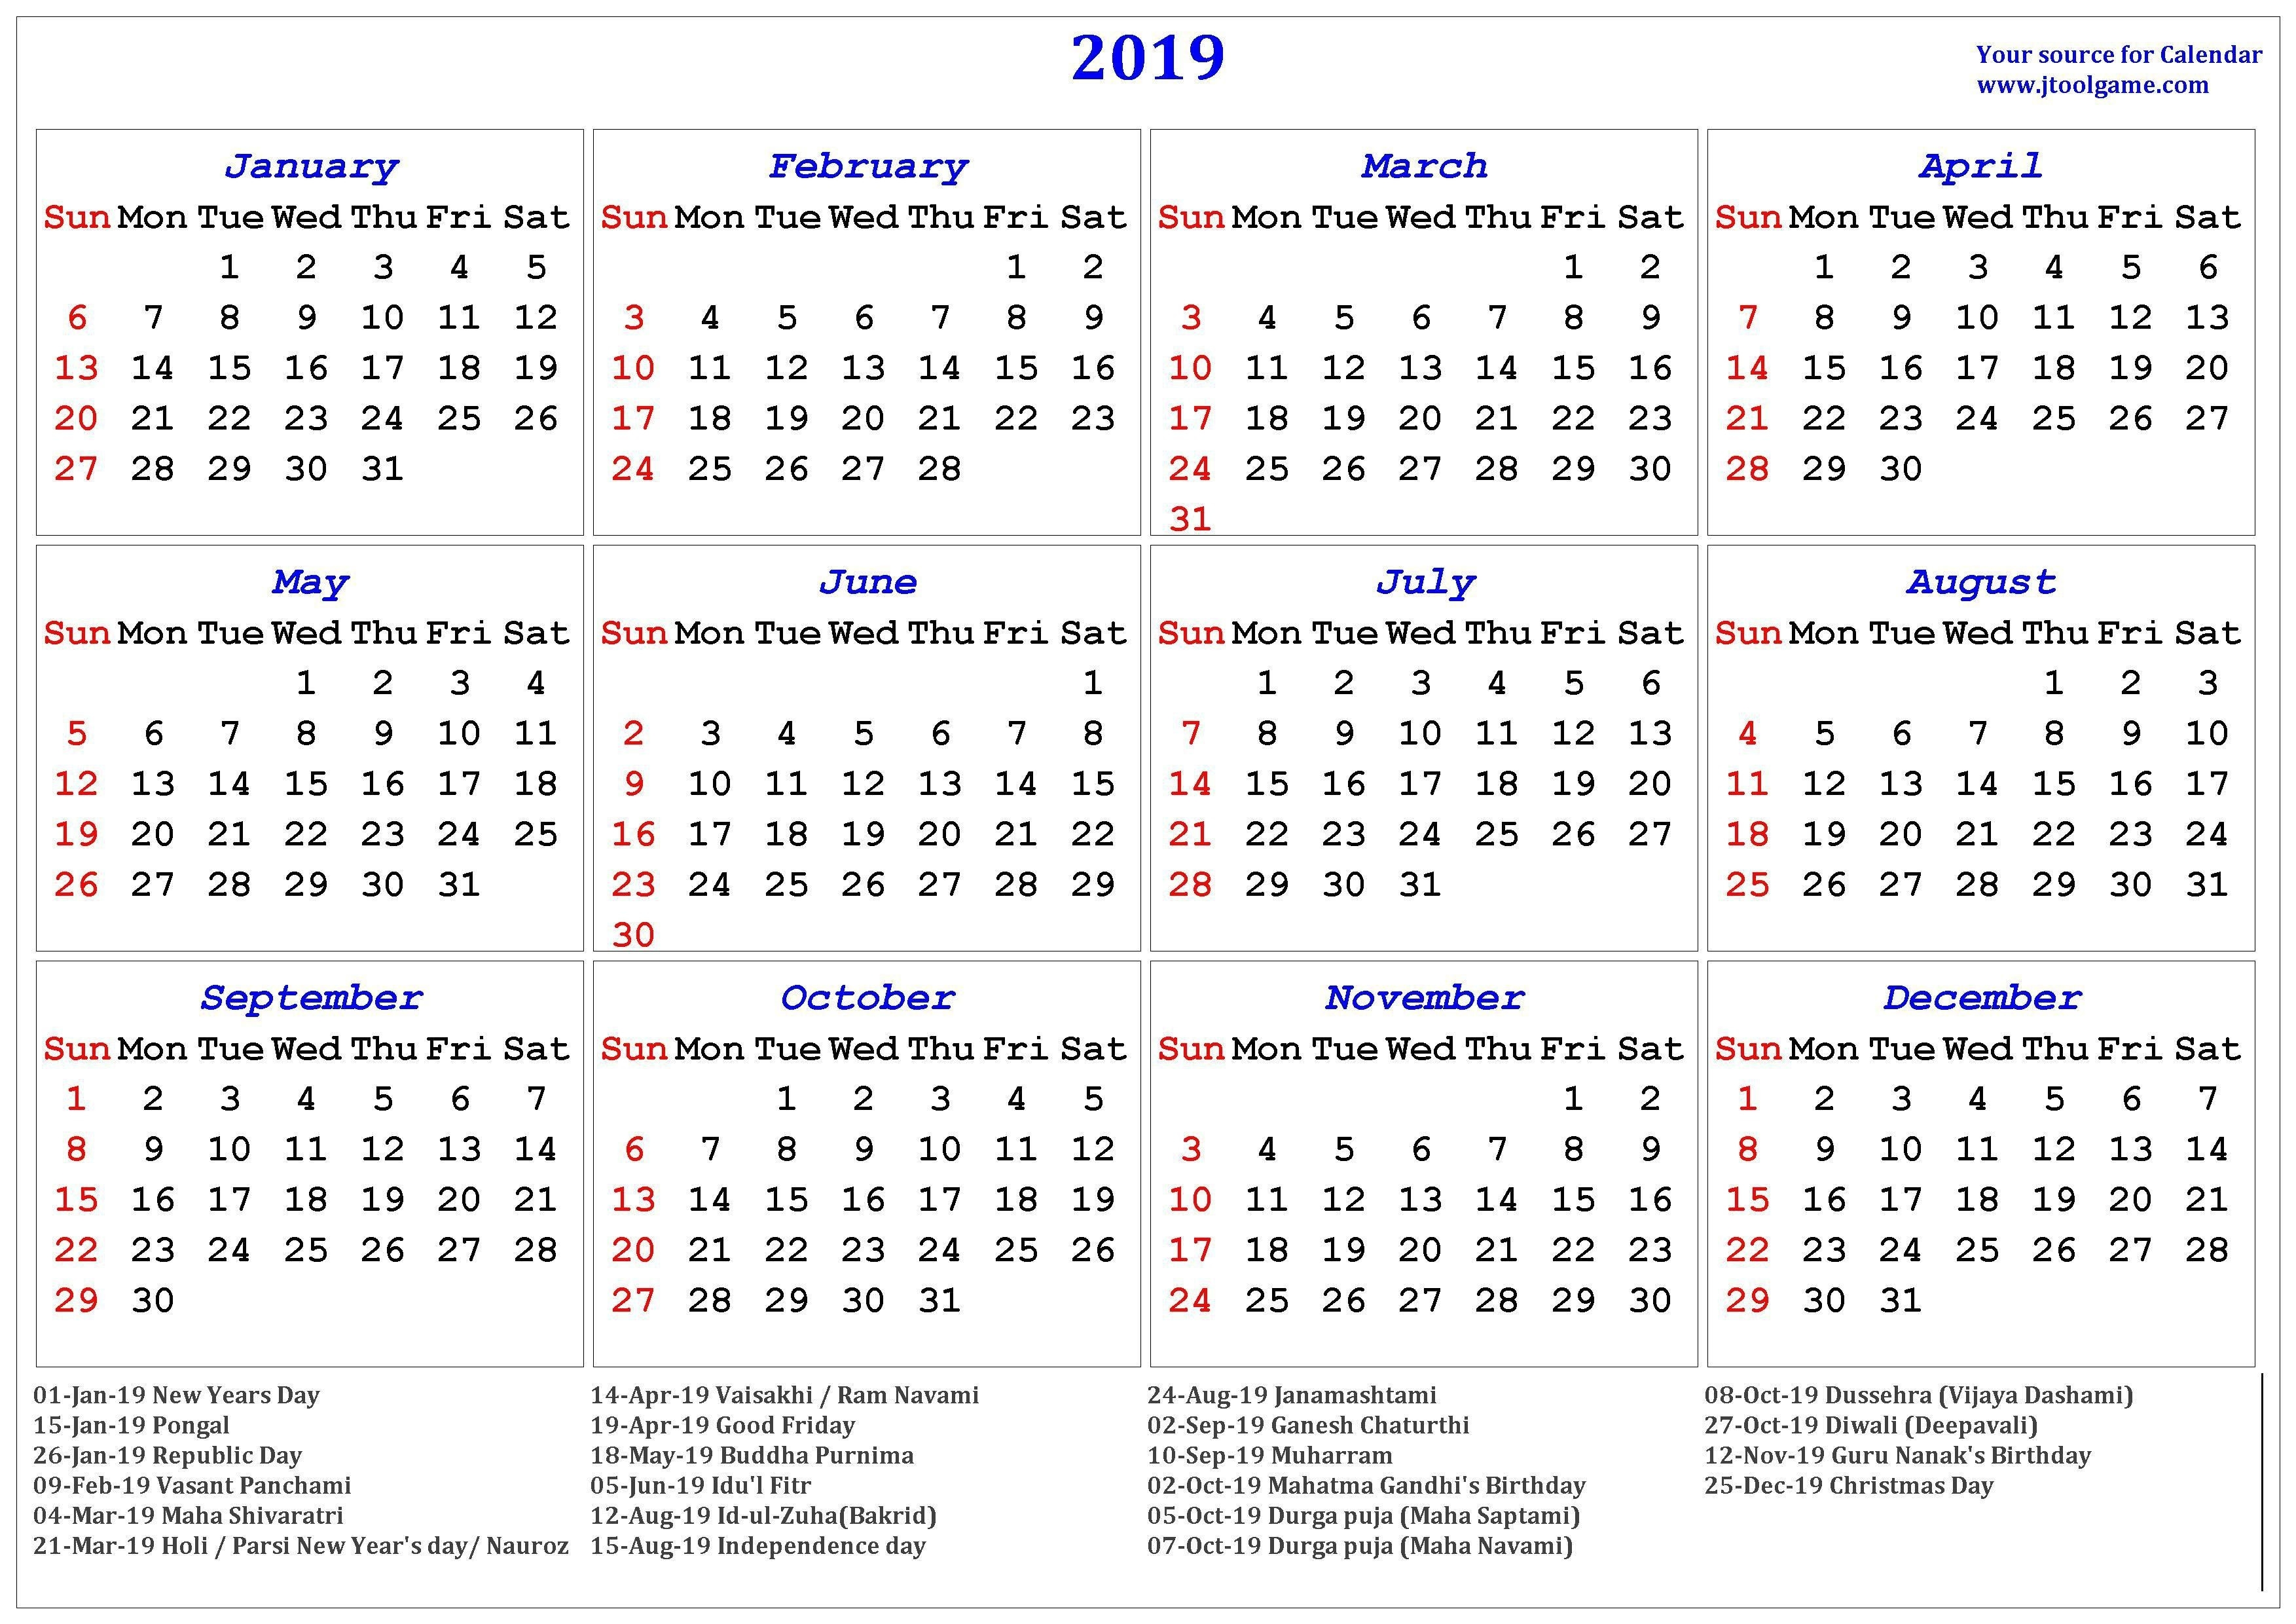 2019 Hindu Calendar With Tithi | Tyohar, Holidays, Festivals-January 2020 Calendar Tithi